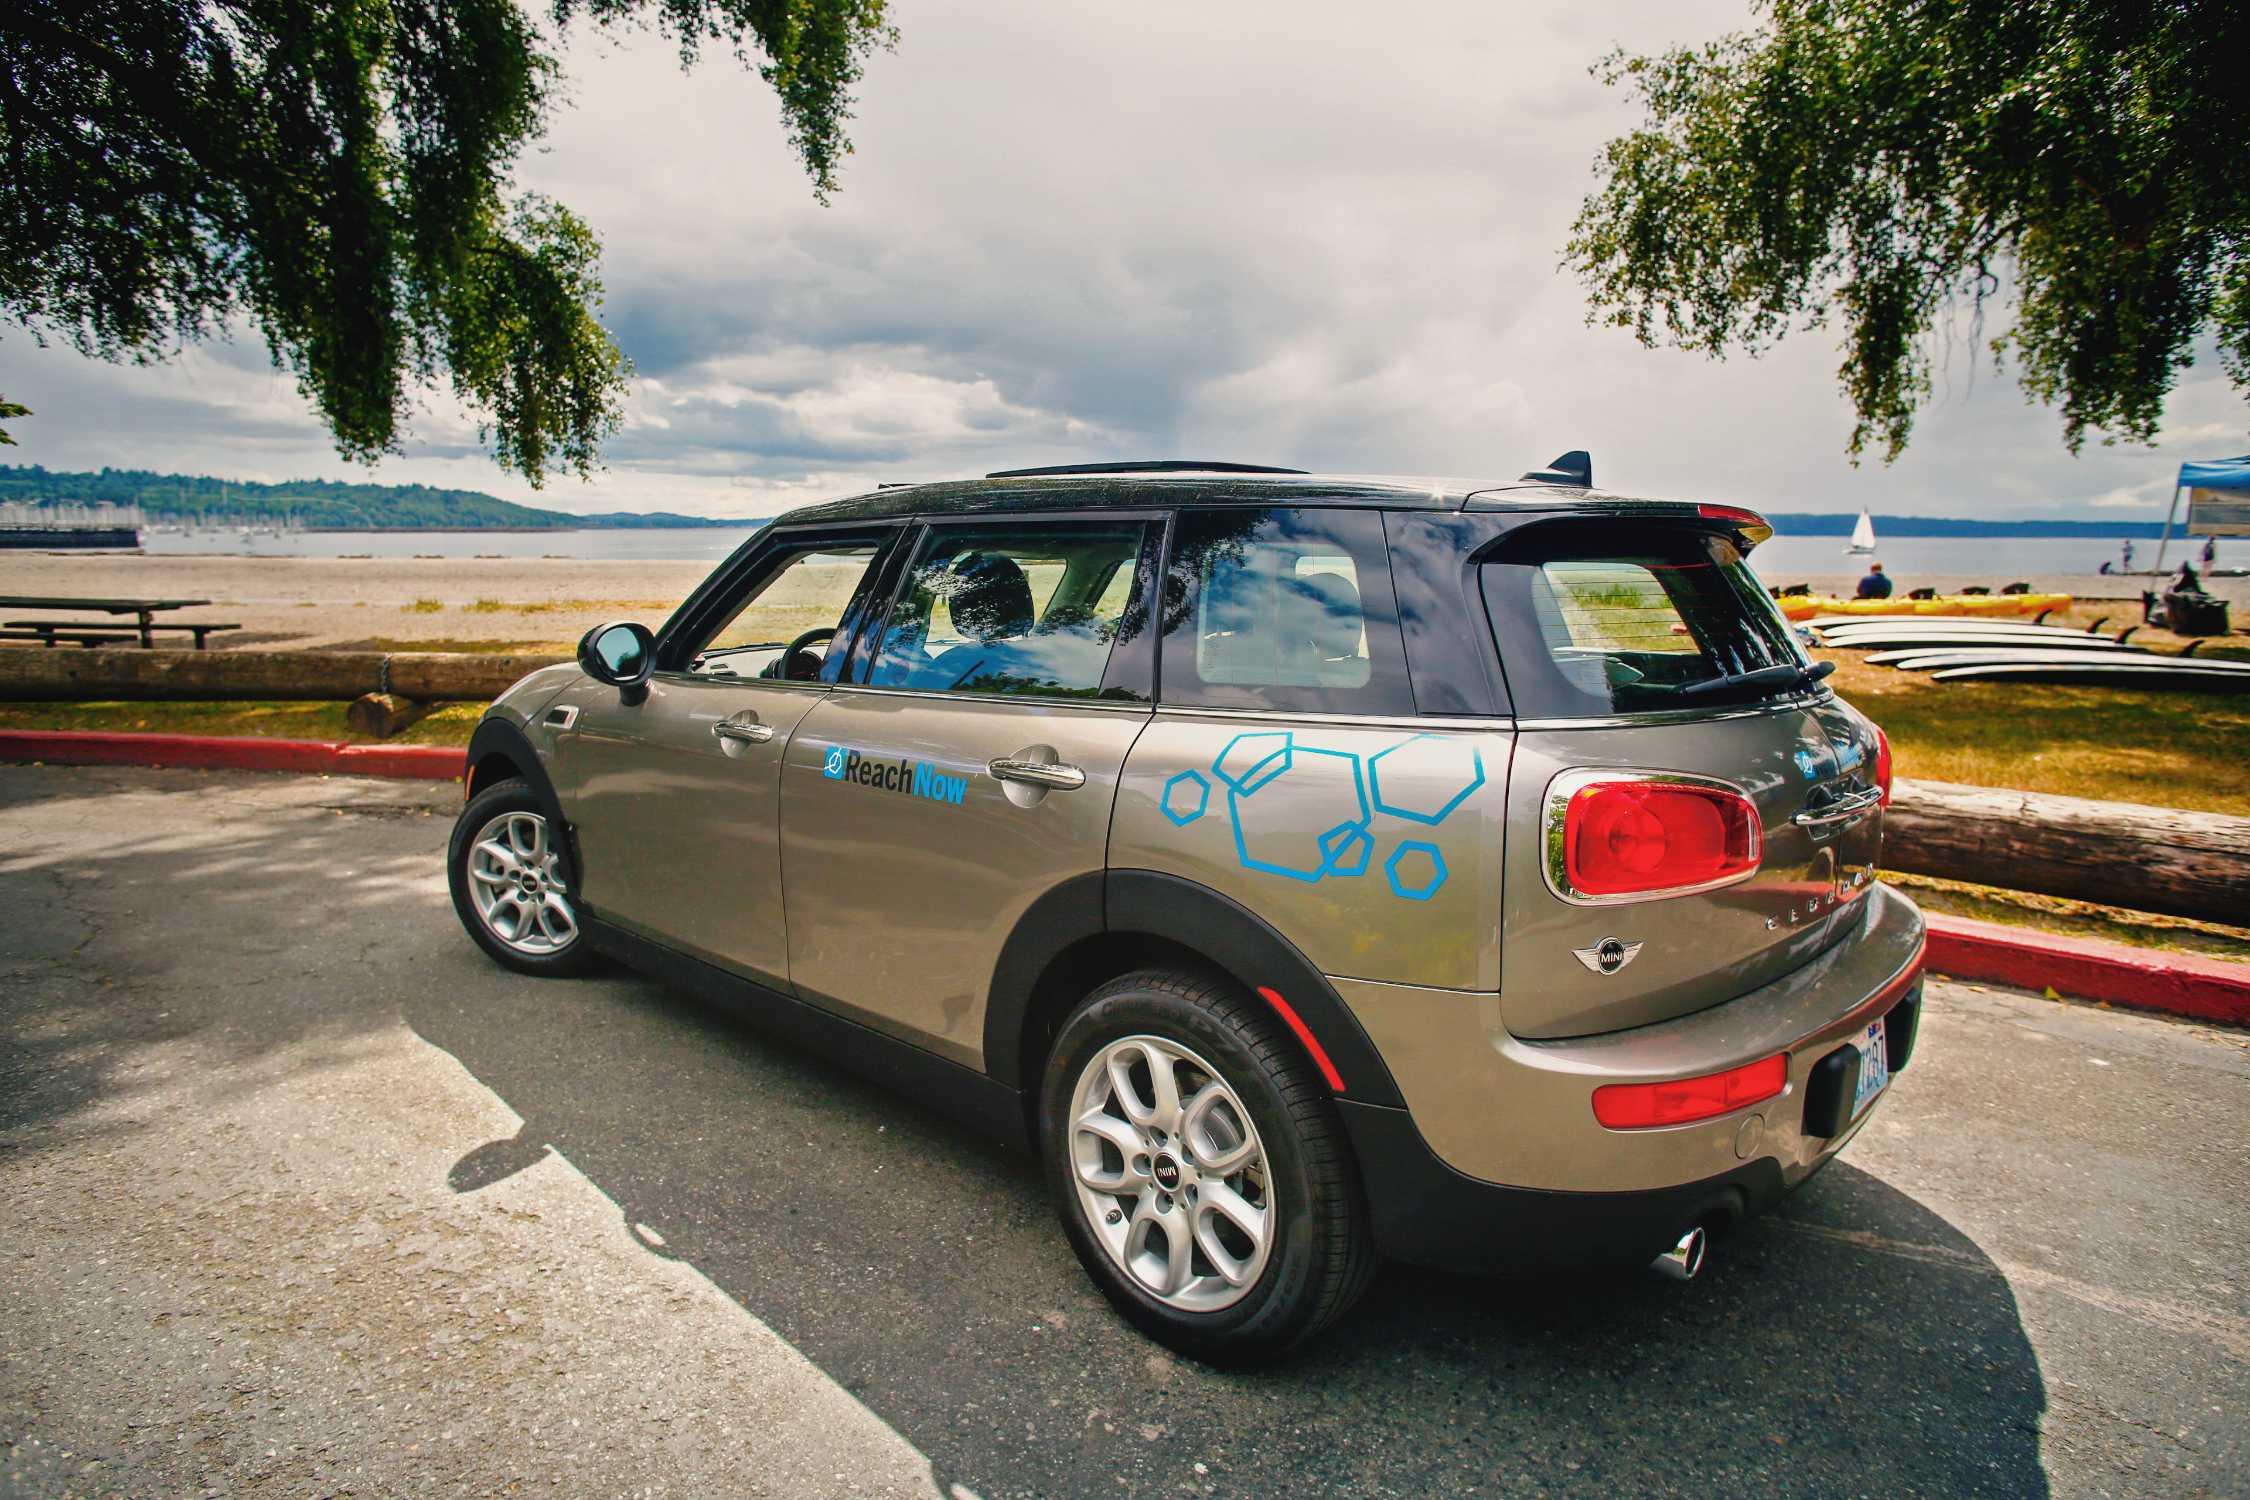 ReachNow Car Sharing Celebrates Growing Demand Adds 150 More Cars